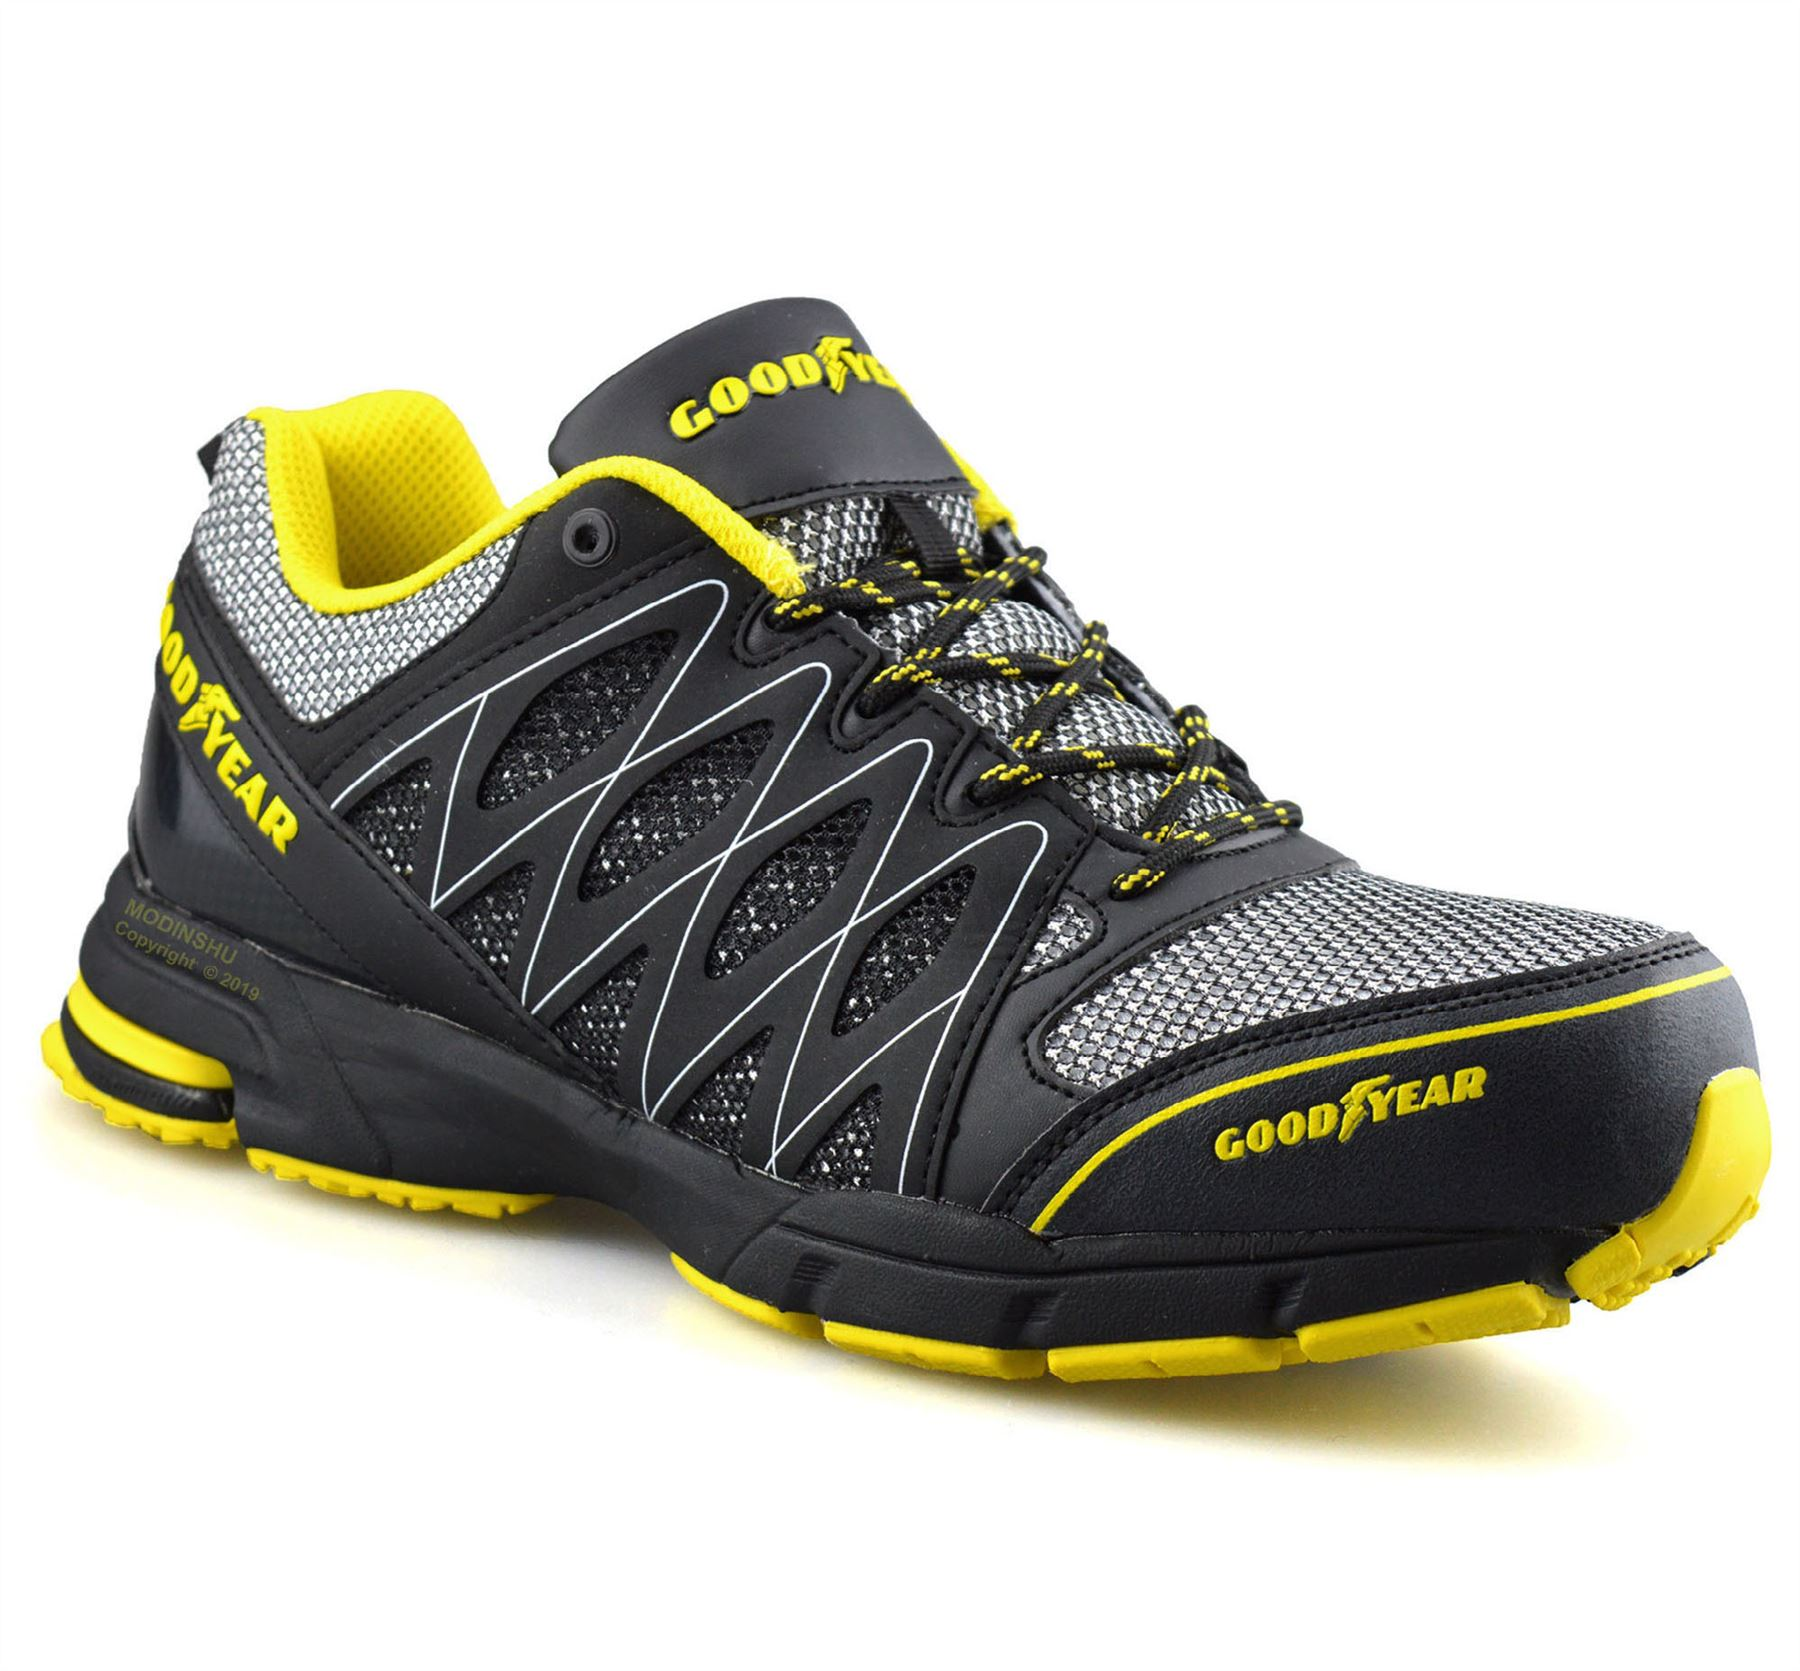 Mens-Goodyear-Safety-Steel-Toe-Cap-Work-Ankle-Hiker-Boots-Trainers-Shoes-Size thumbnail 8